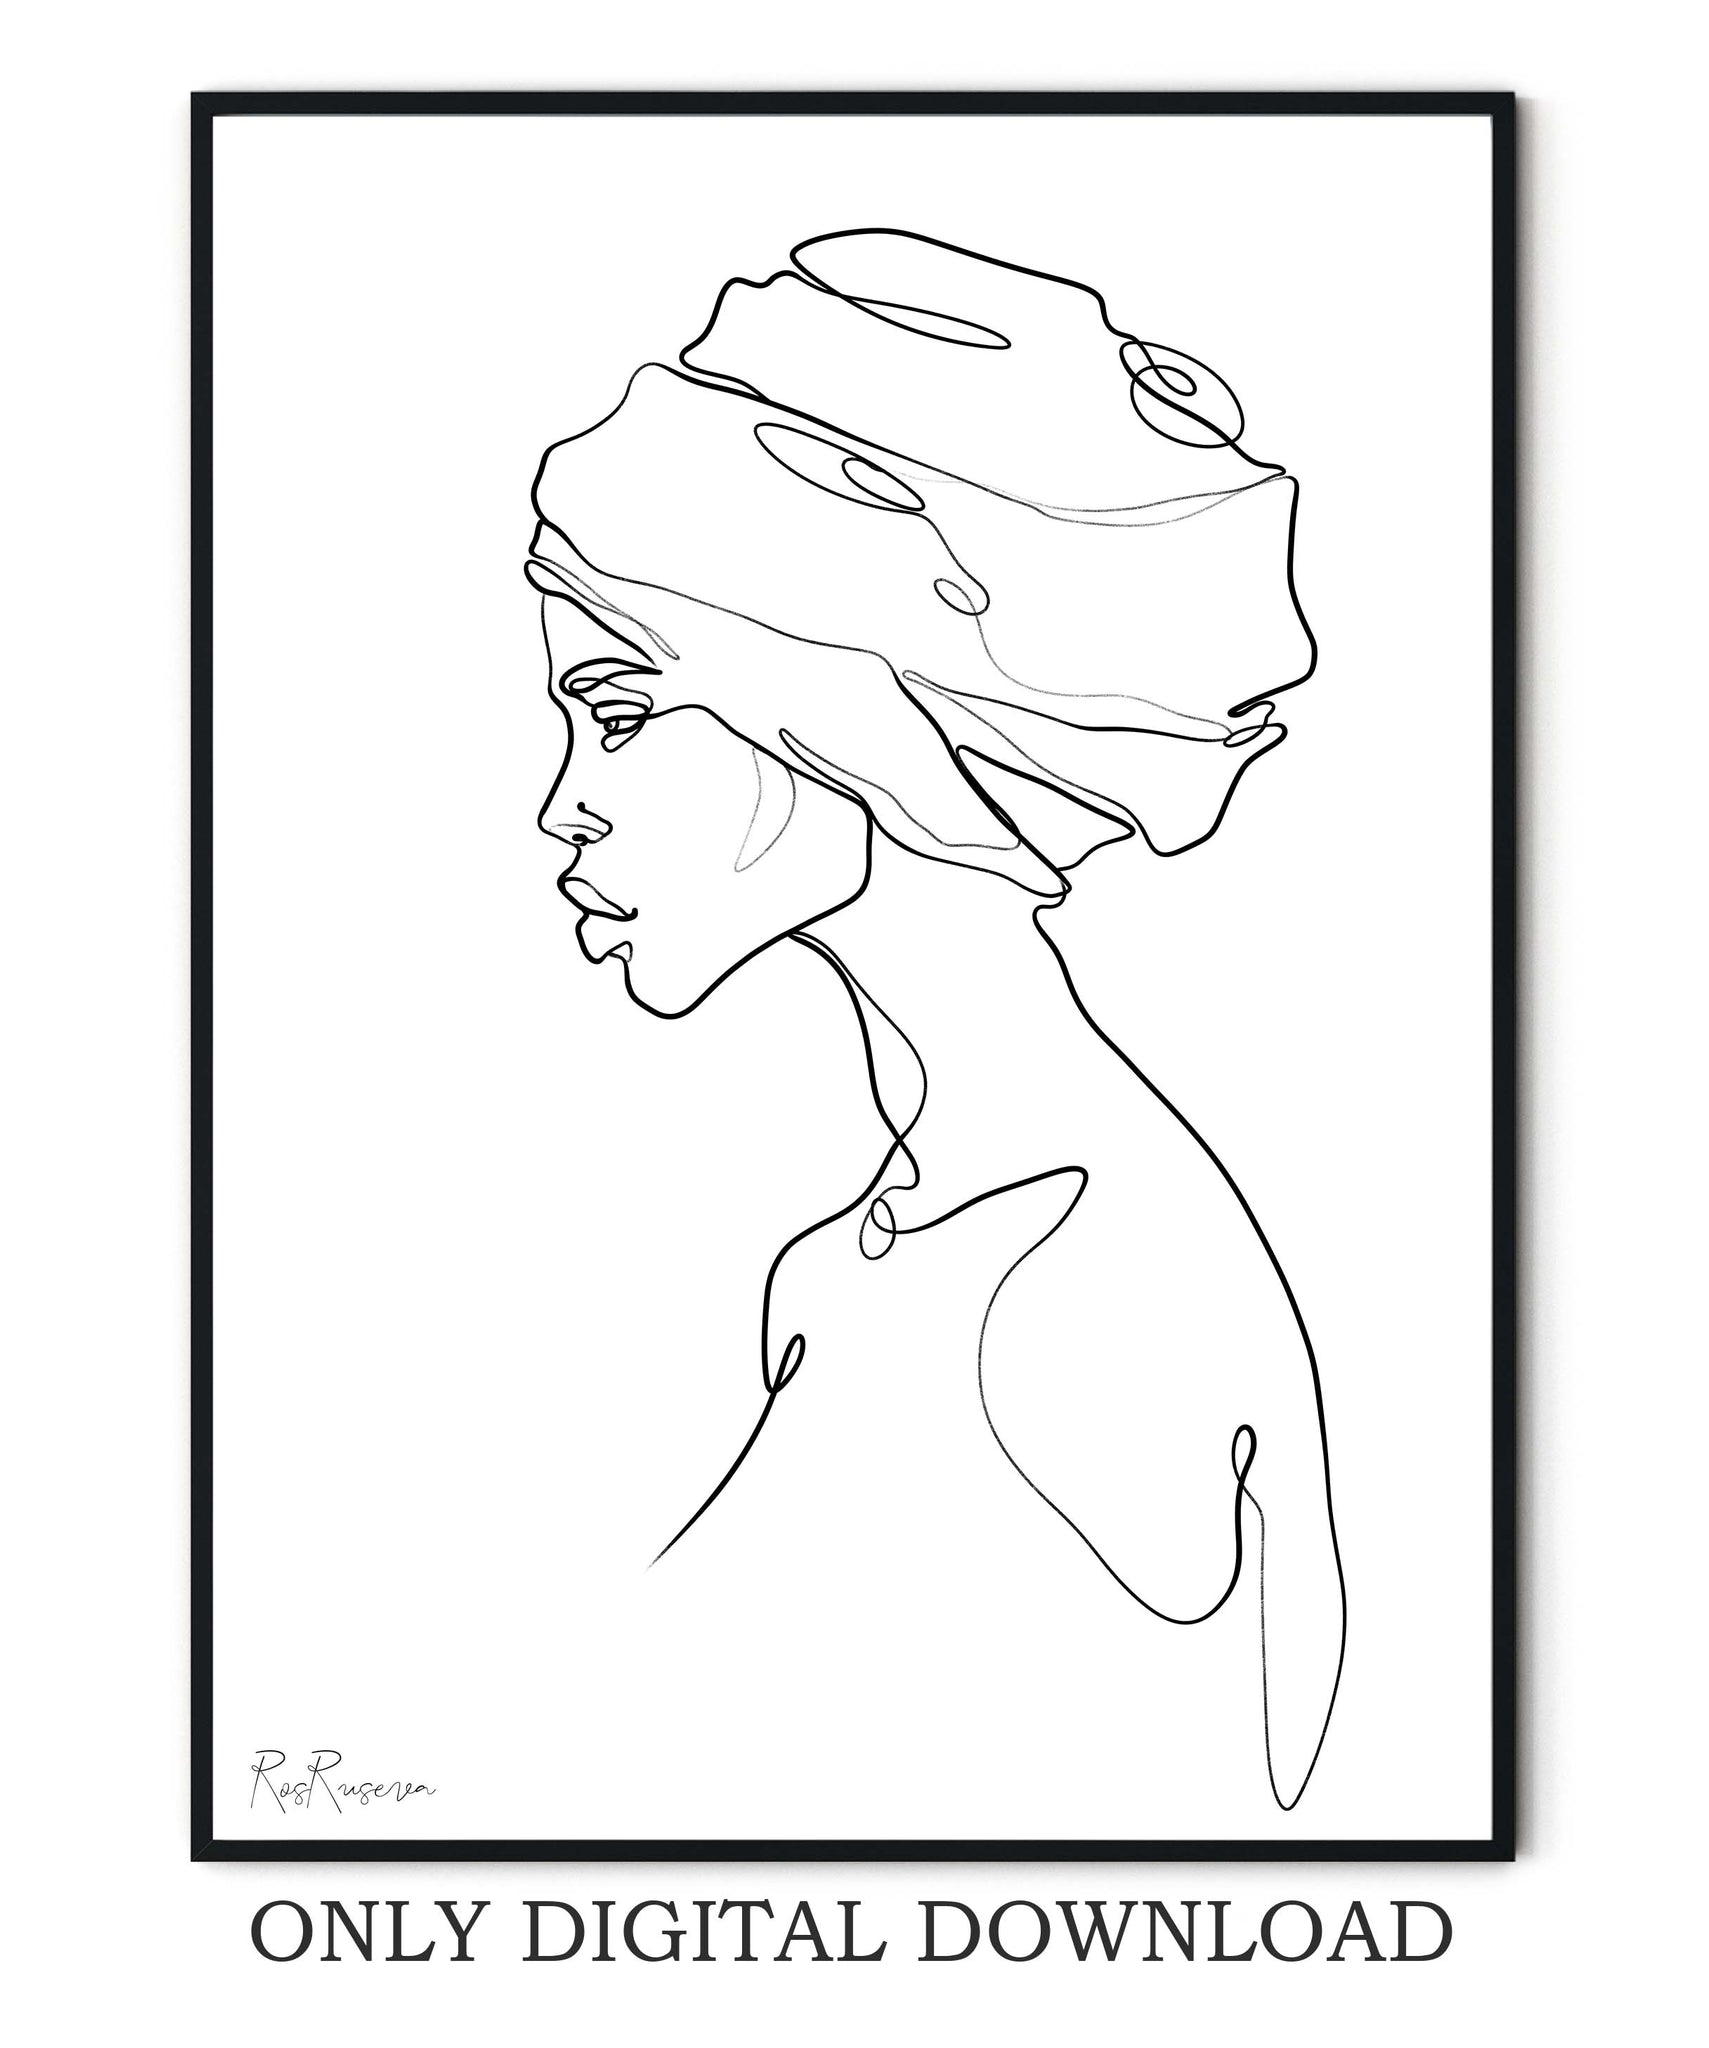 Black Woman Line Art